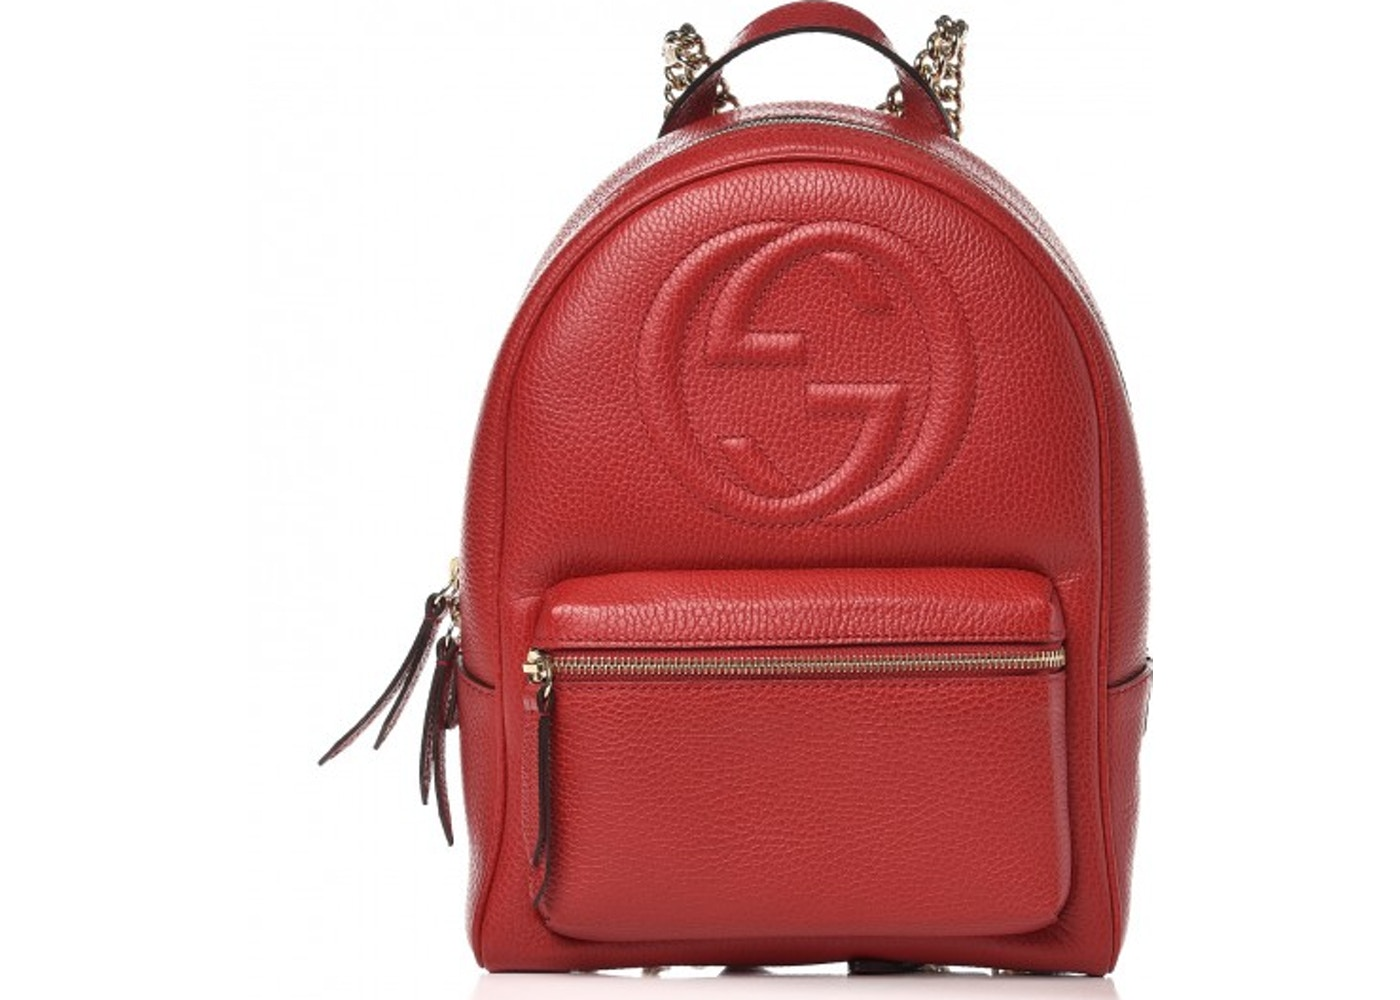 Gucci Soho Backpack Red